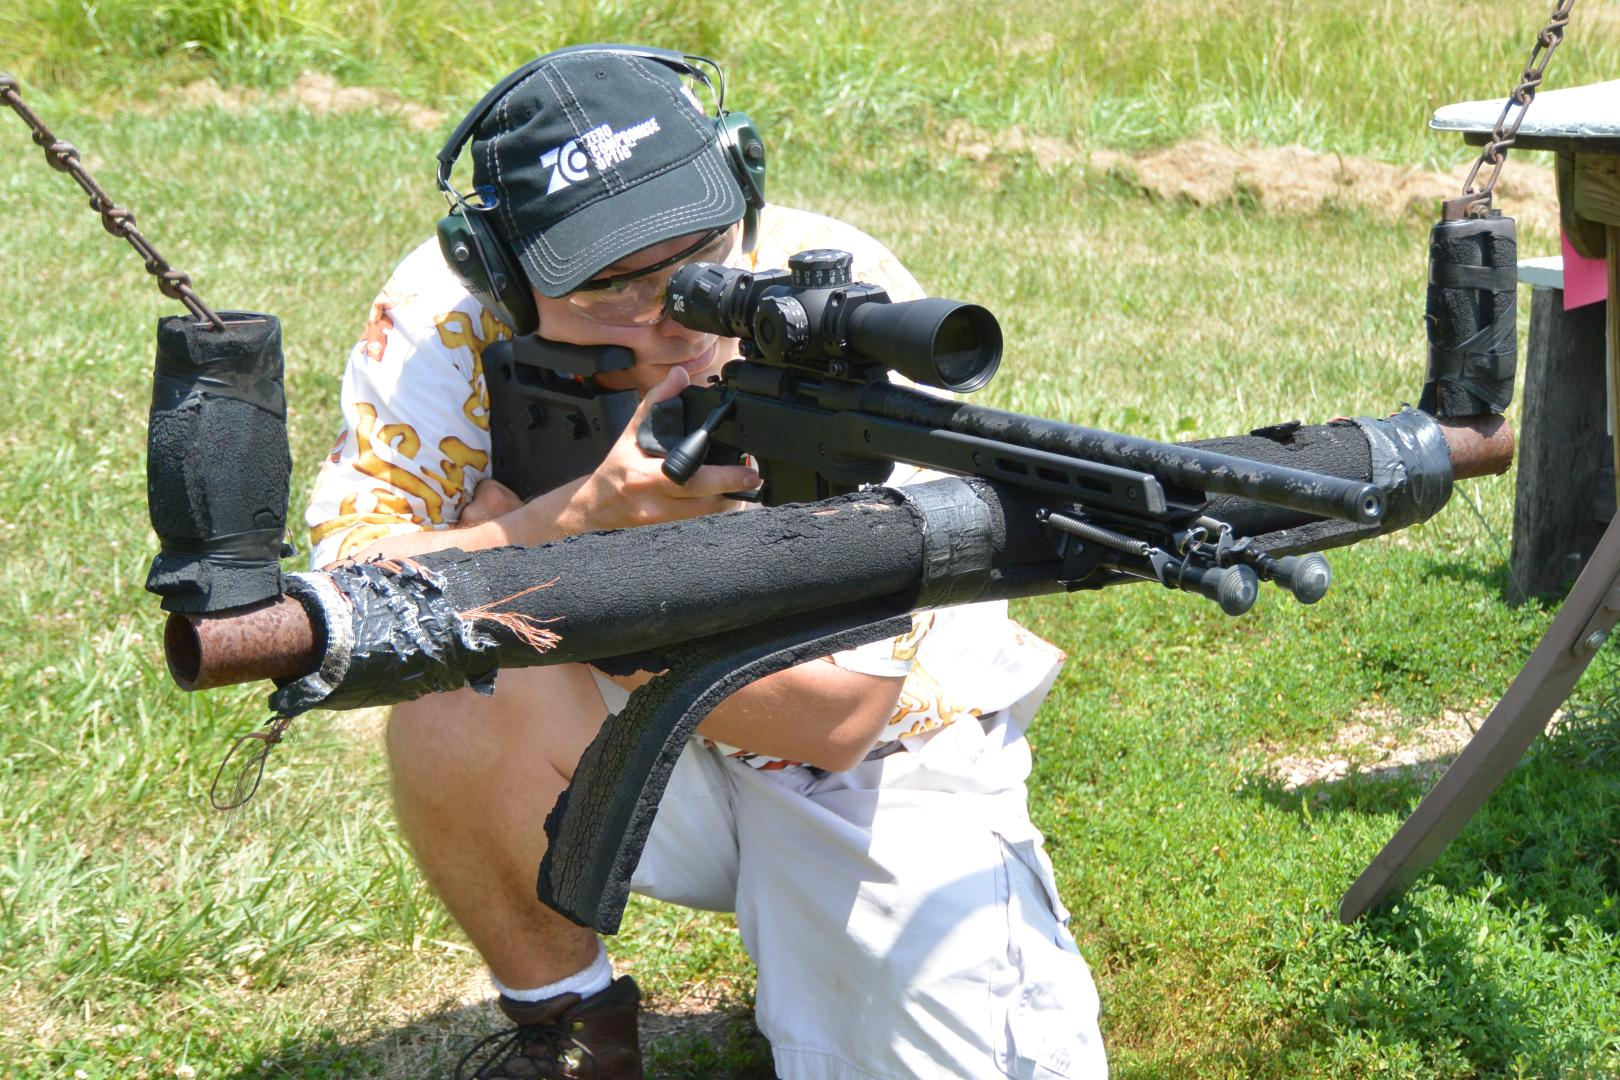 Shooting the Proof Carbon Fiber Barrel Vudoo V-22 in MDT XRS Chassis with ZC 420 Scope and TT Two-Stage Trigger off one of those Ridiculous PRS Swings